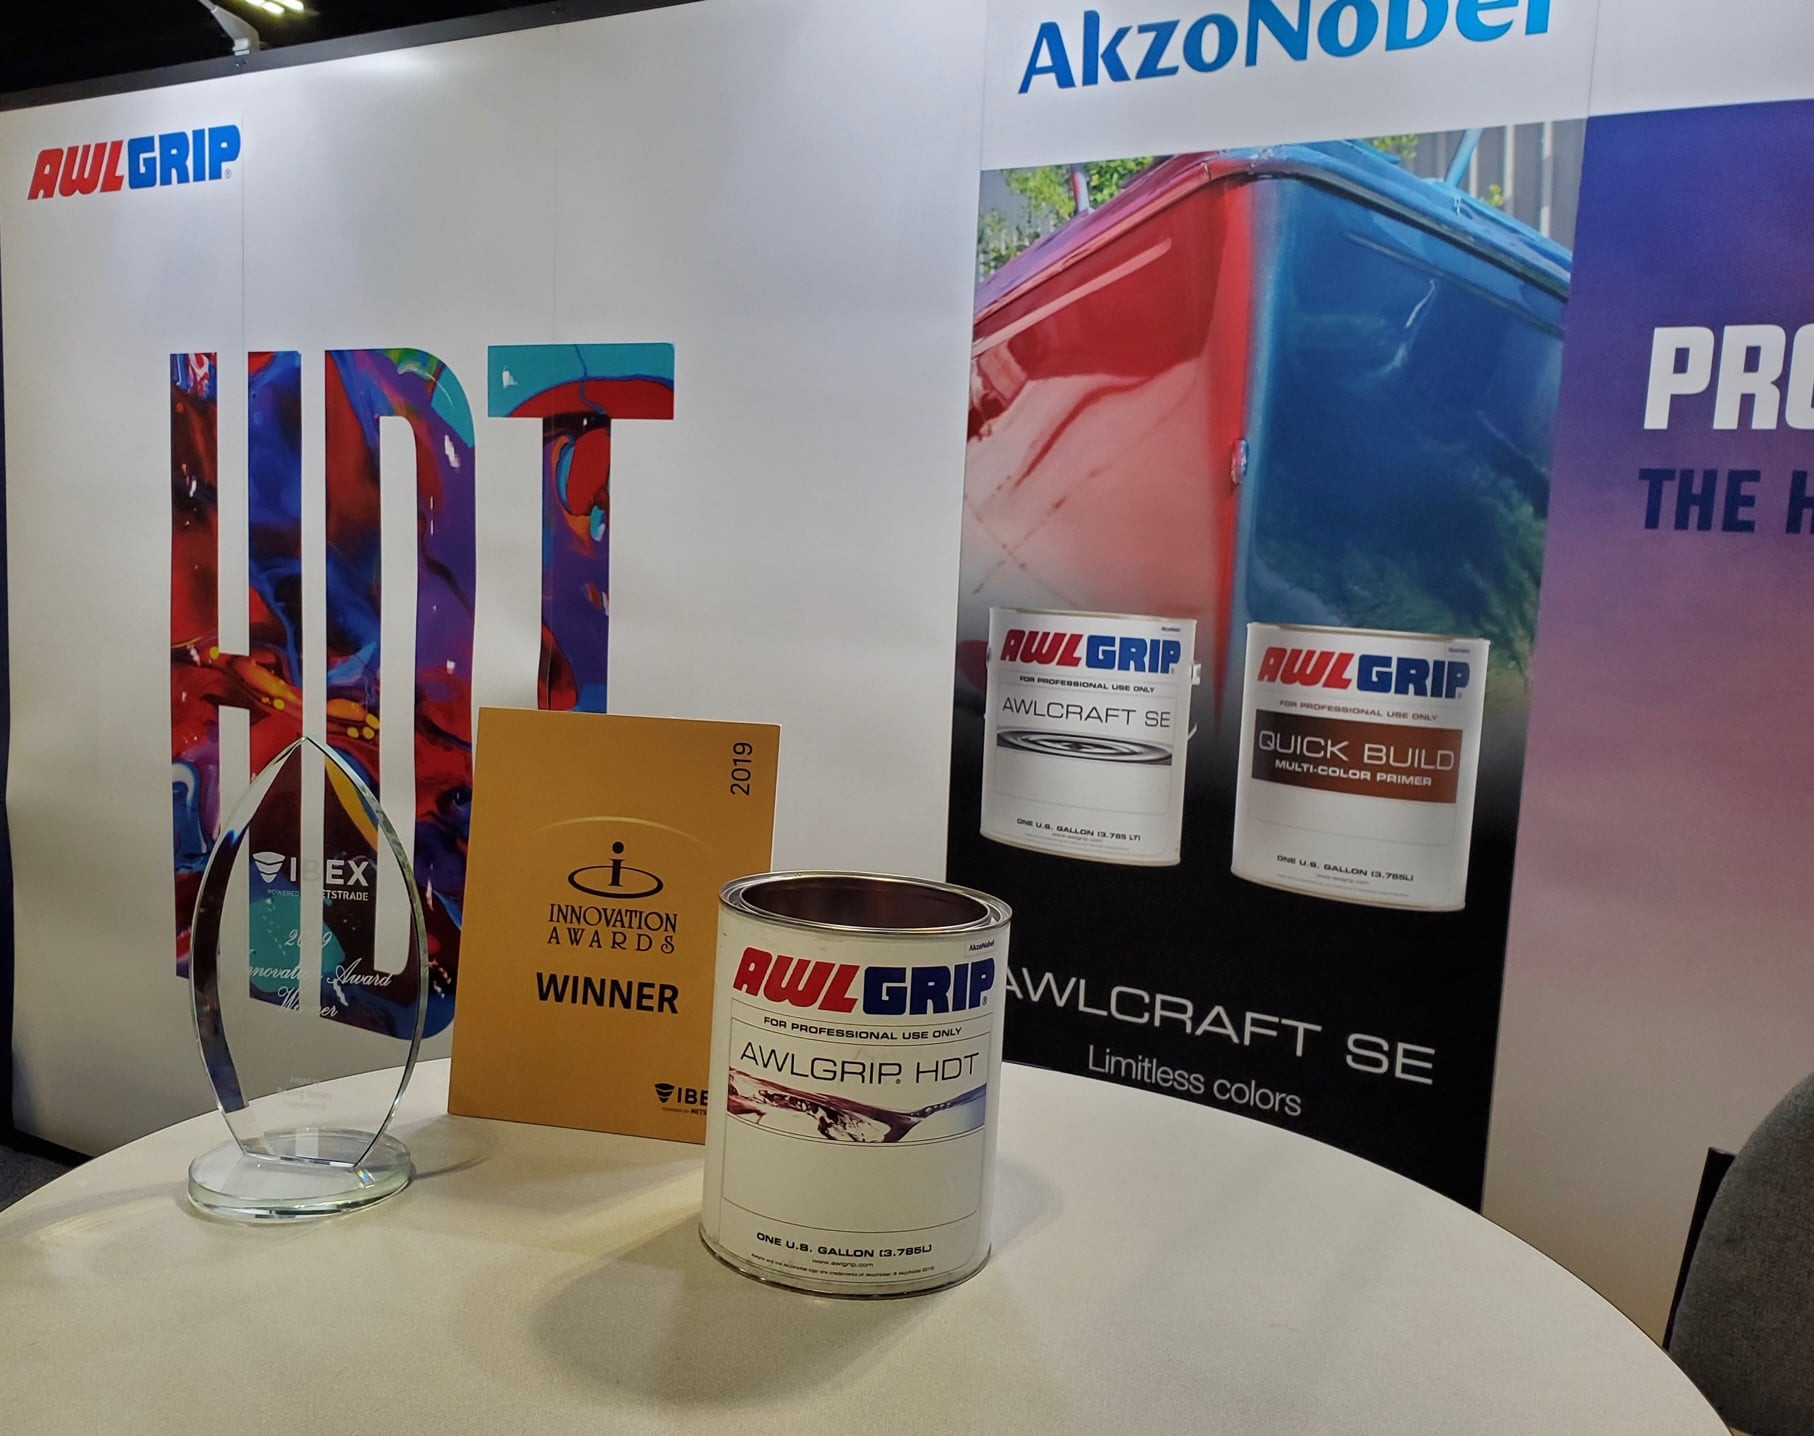 Awlgrip HDT Win at IBEX